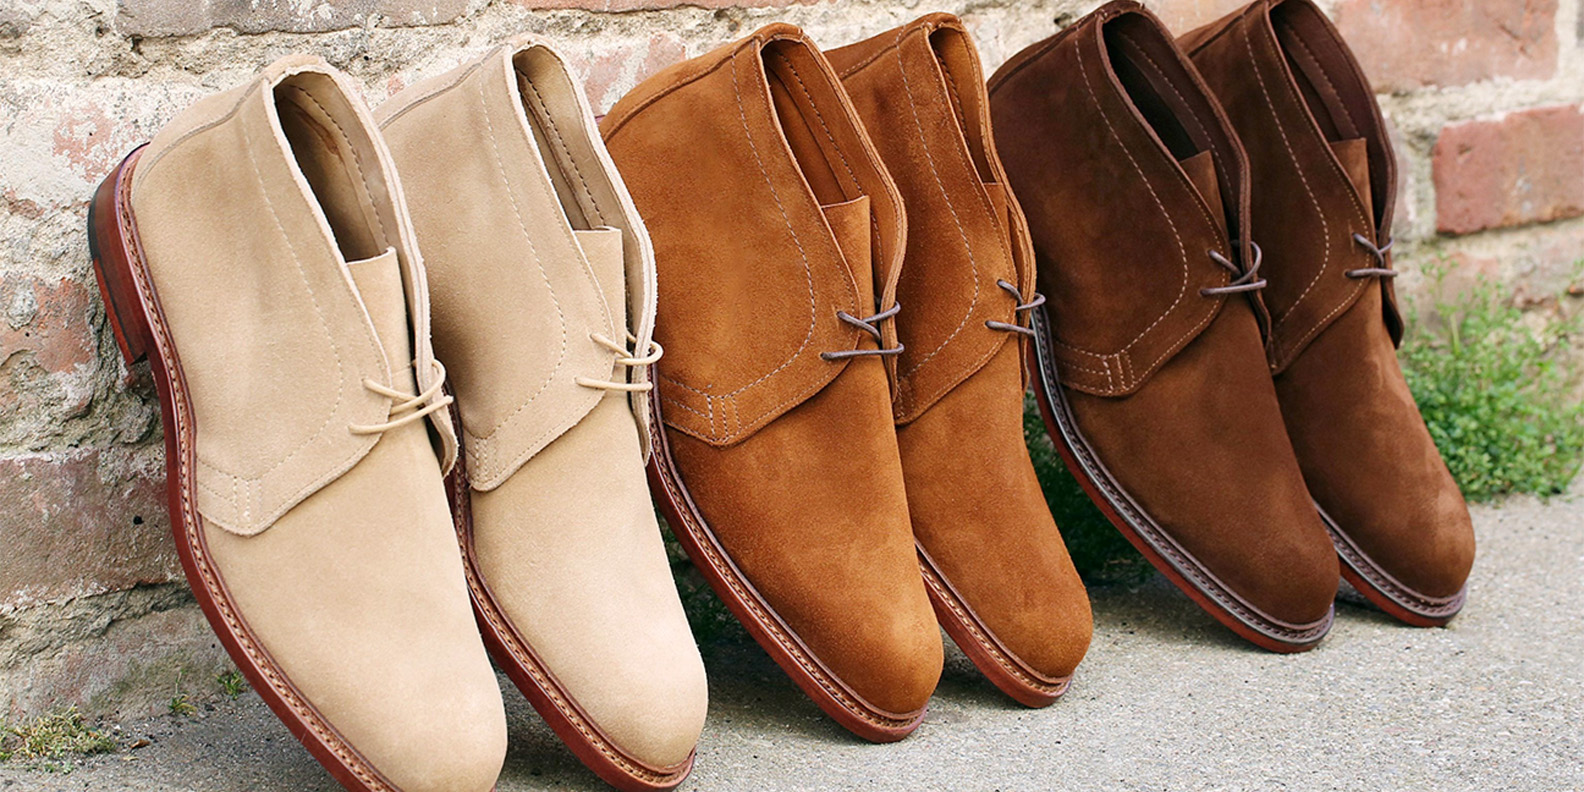 50b8e9ad9946d Allen Edmonds Boots Sale offers up to 40% off select styles + free shipping  - 9to5Toys